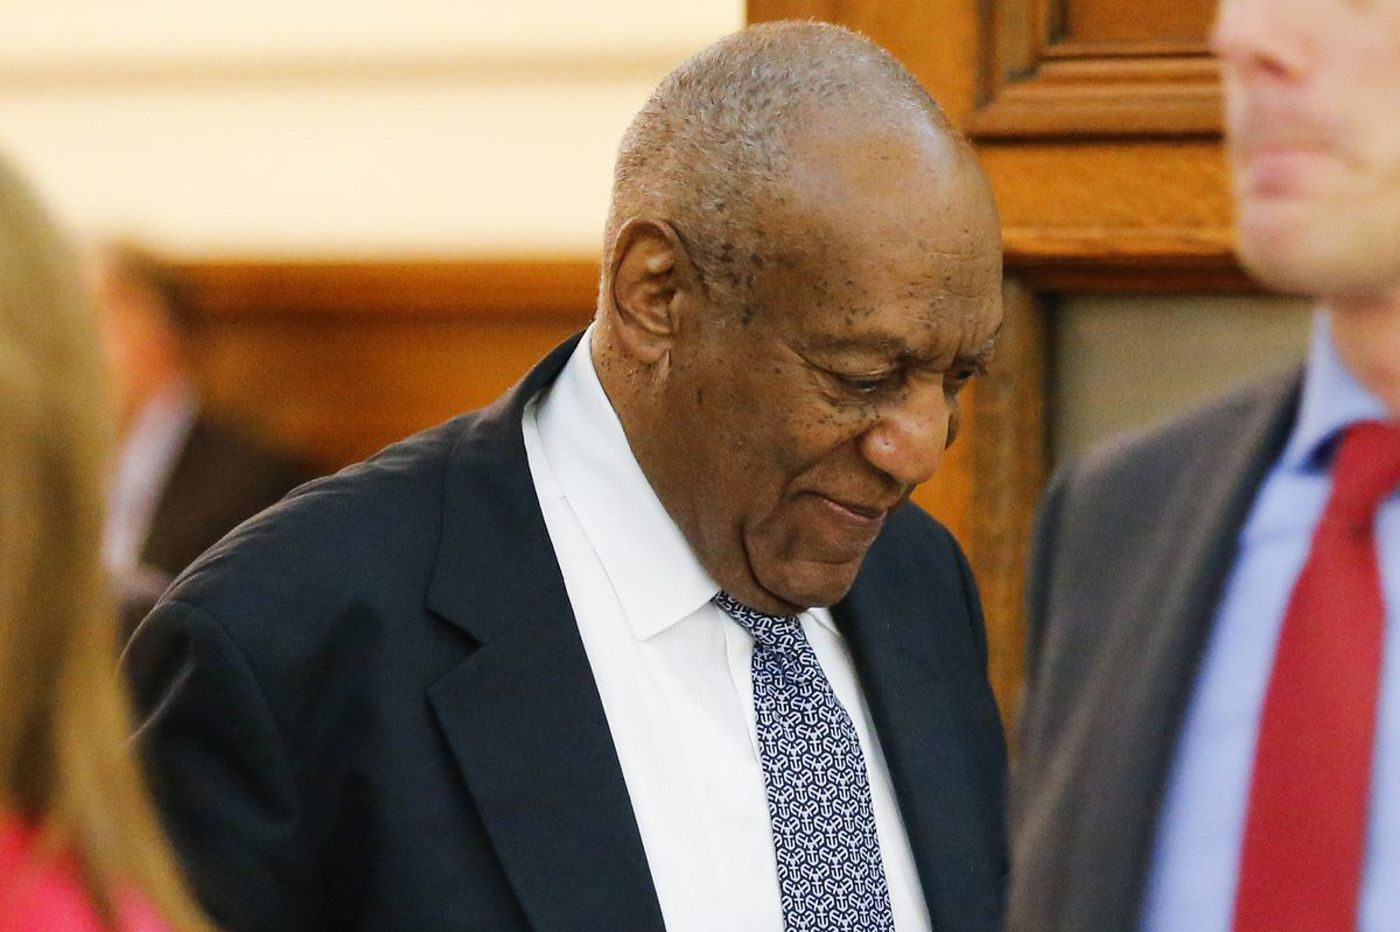 After weeklong trial, Cosby case goes to the jury